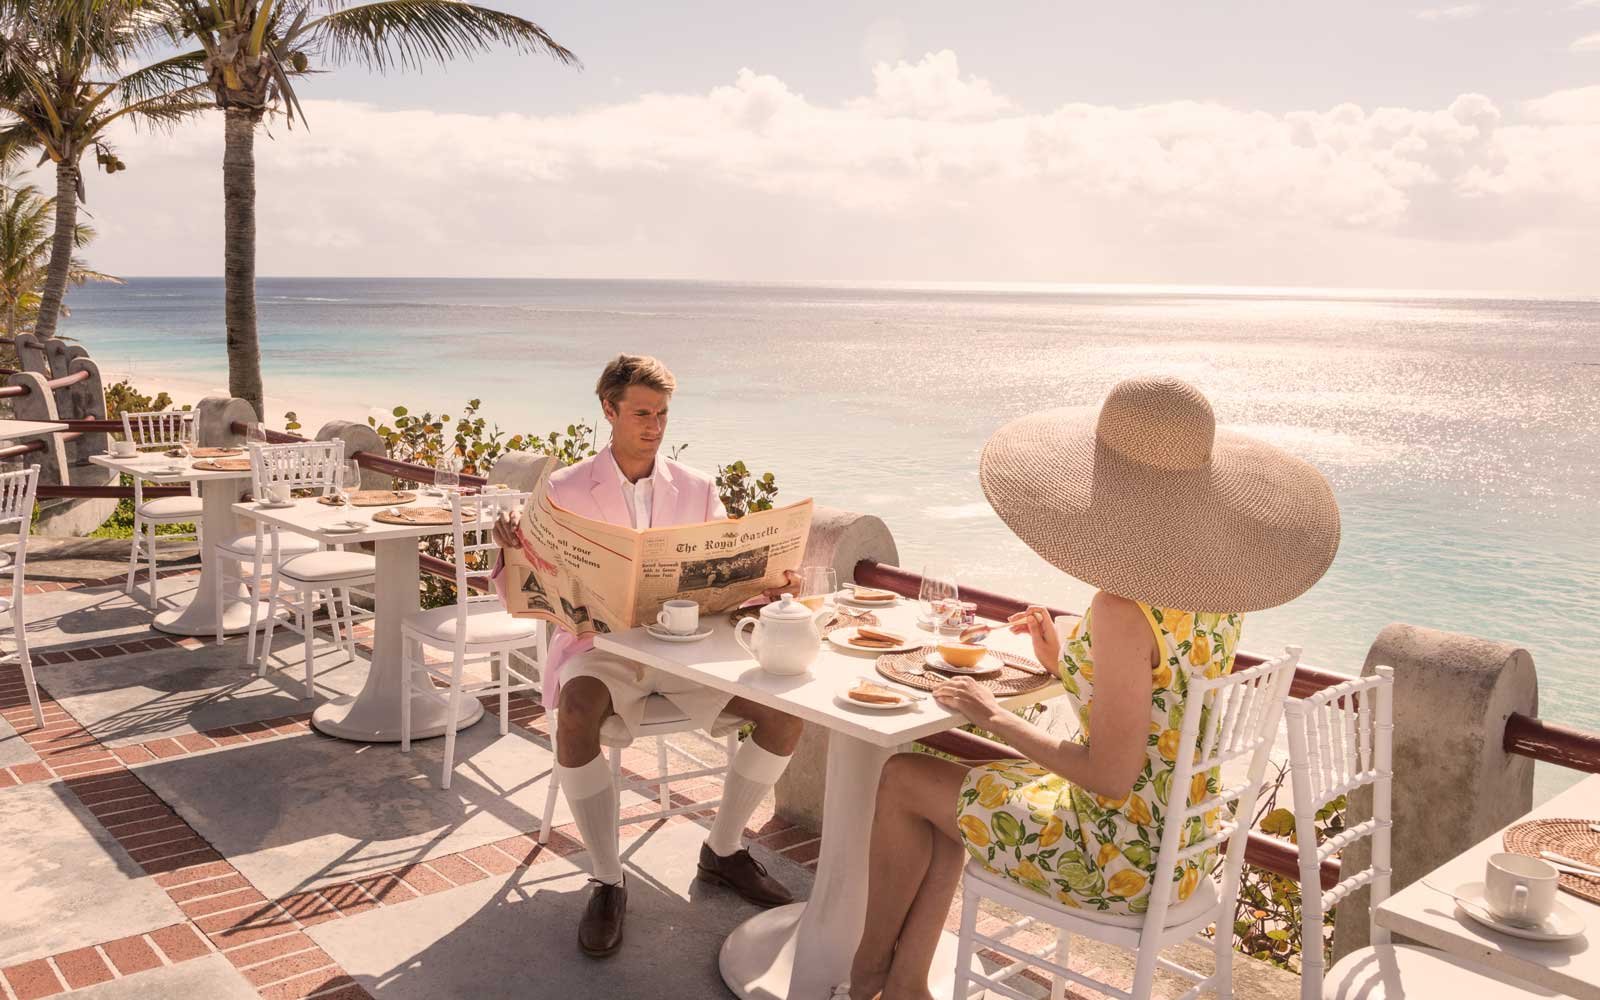 The Coral Beach and Tennis Club provides outdoor dining.